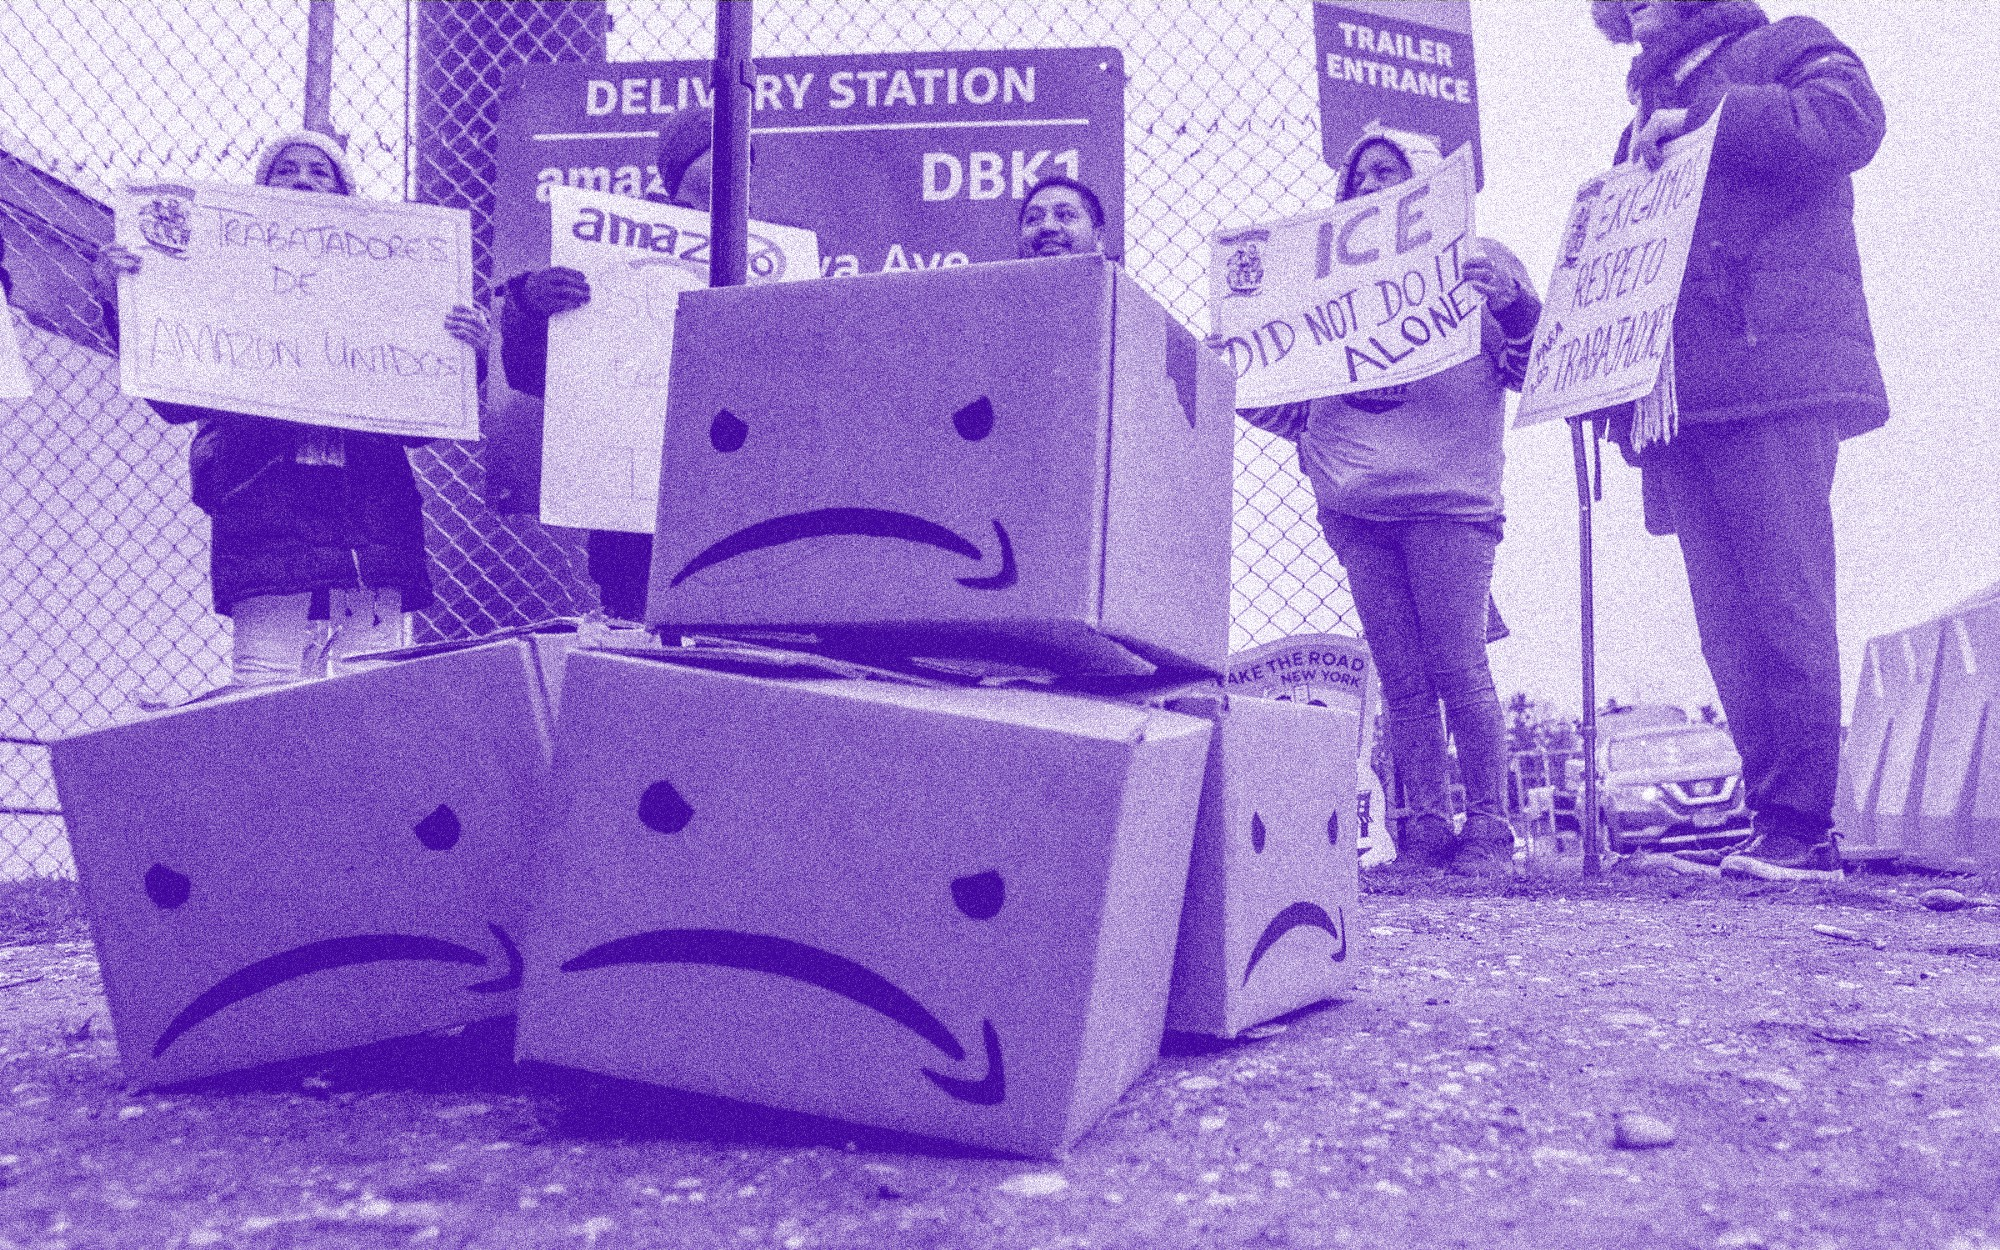 A purple filtered photo of a stack of boxes with an angry Amazon face on them at a protest.